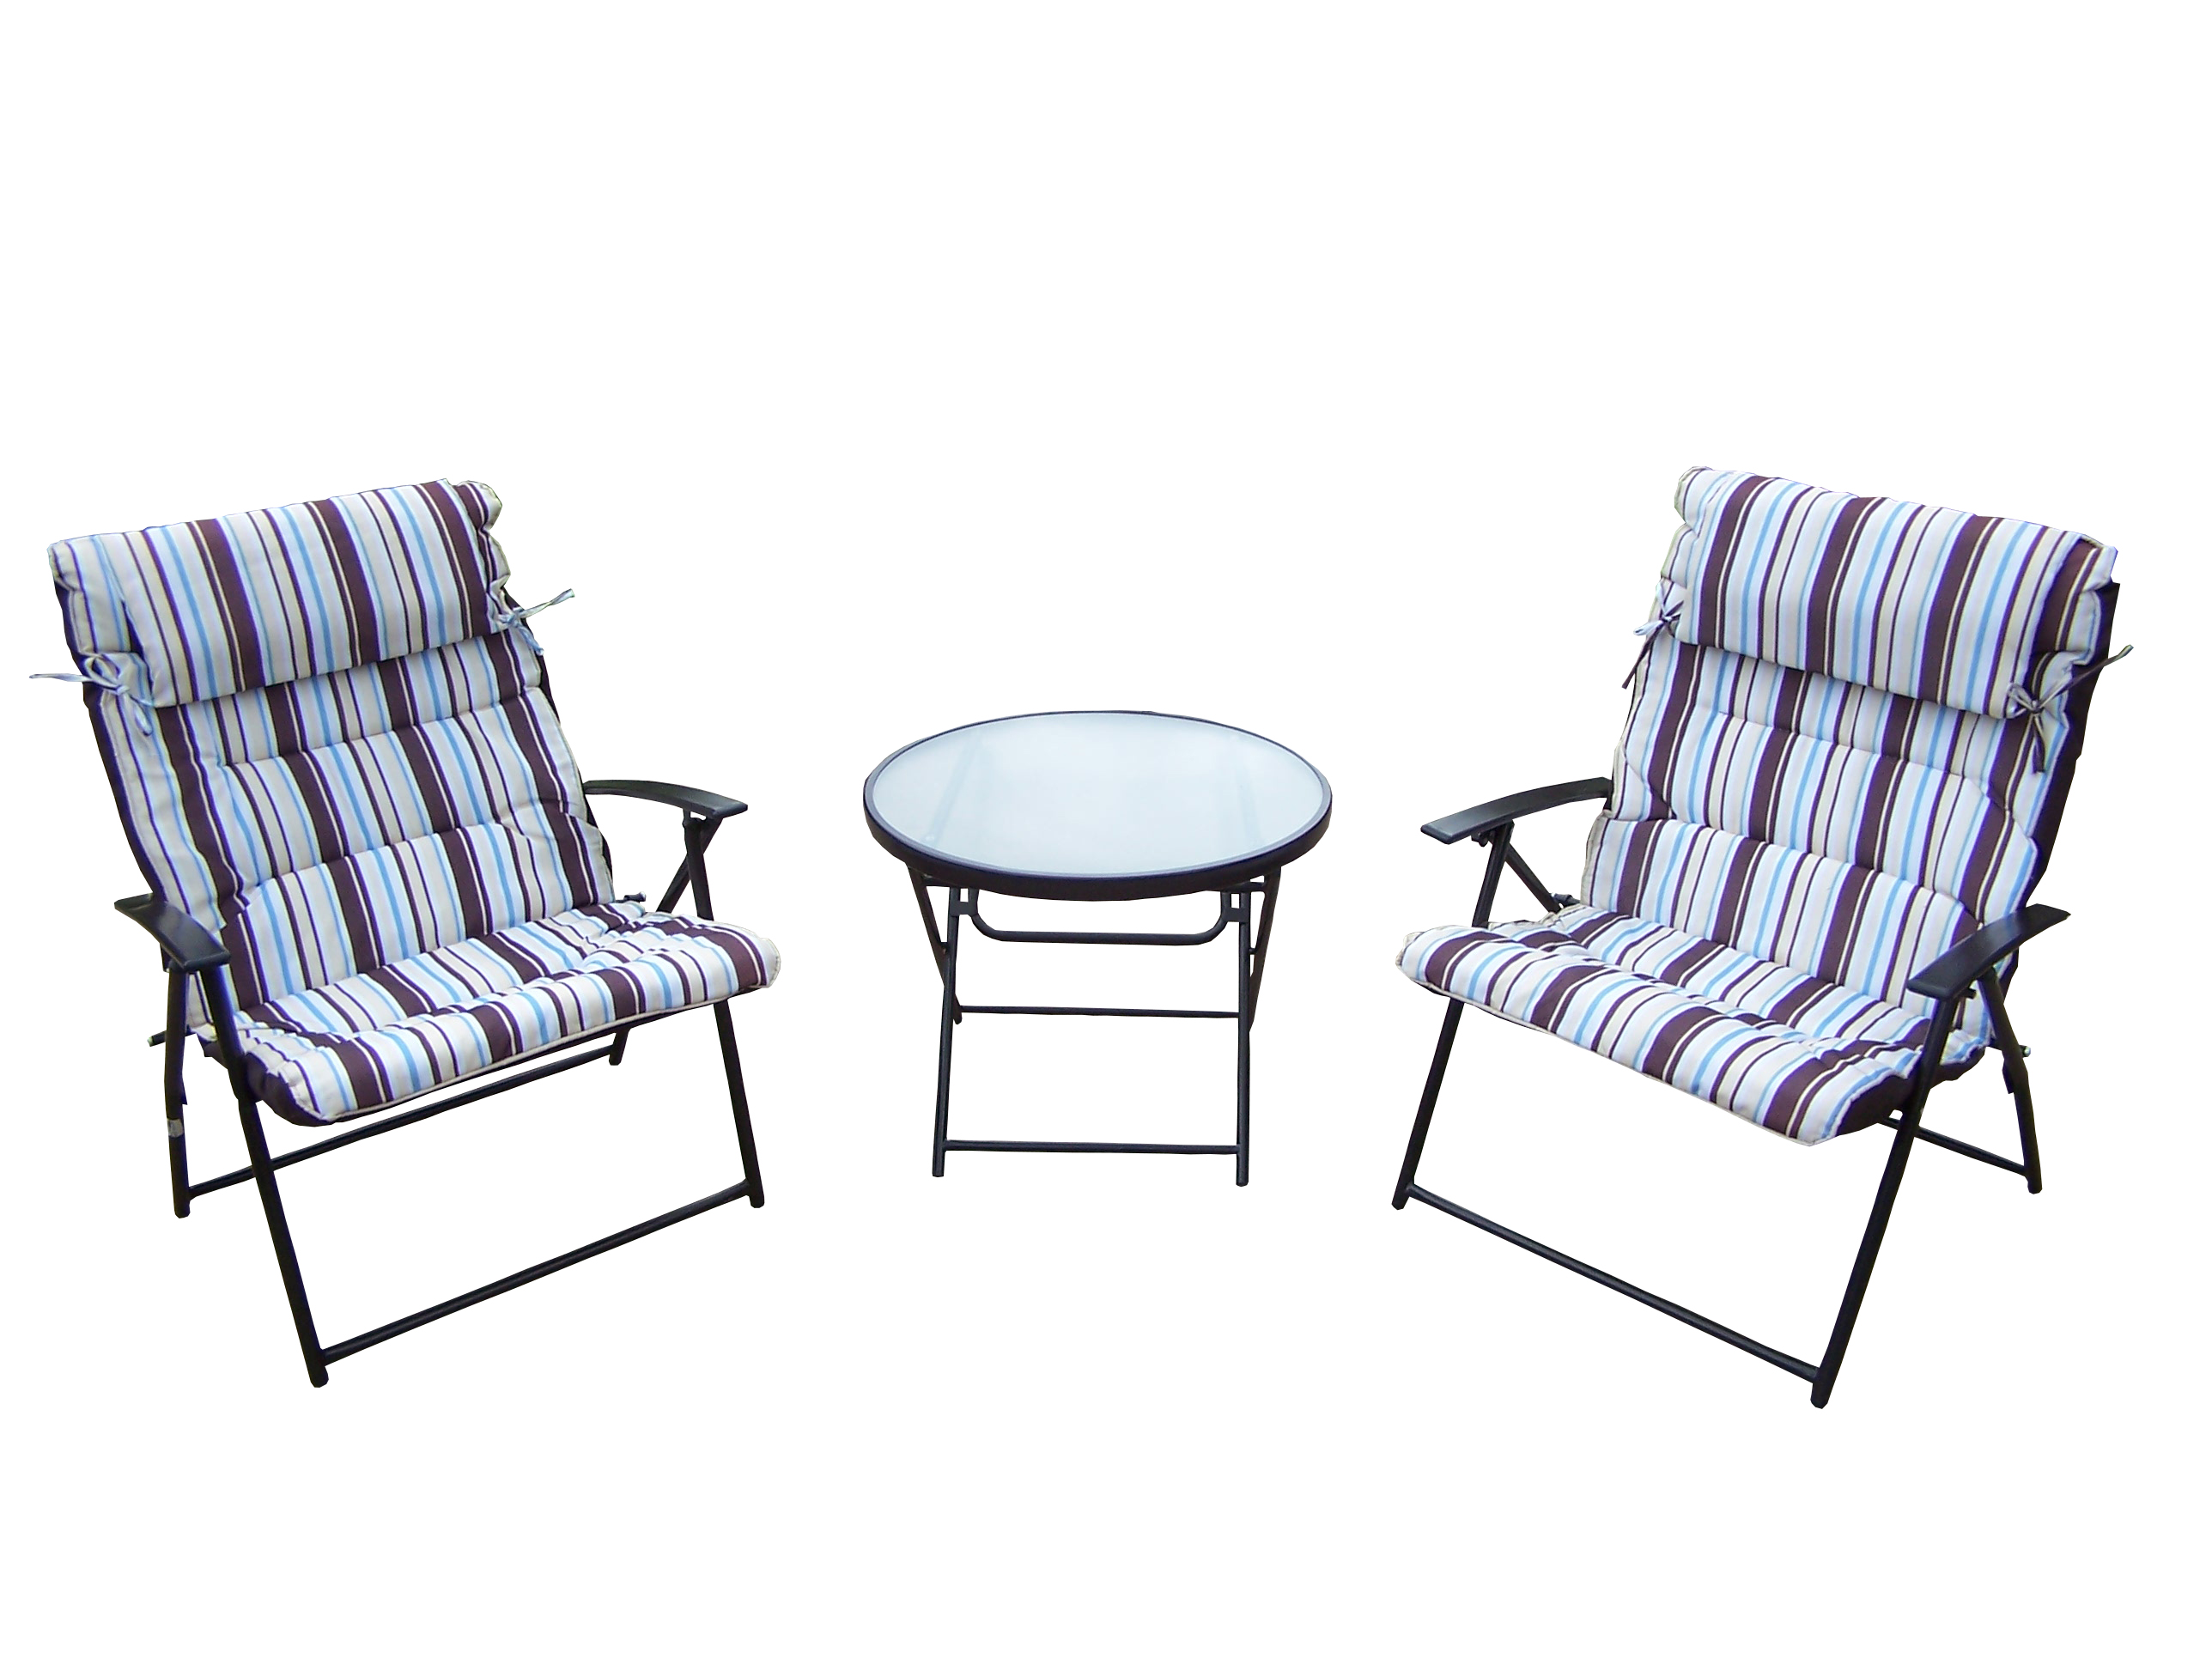 comfy outdoor chair adirondack chairs cushions uk patio image pixelmari